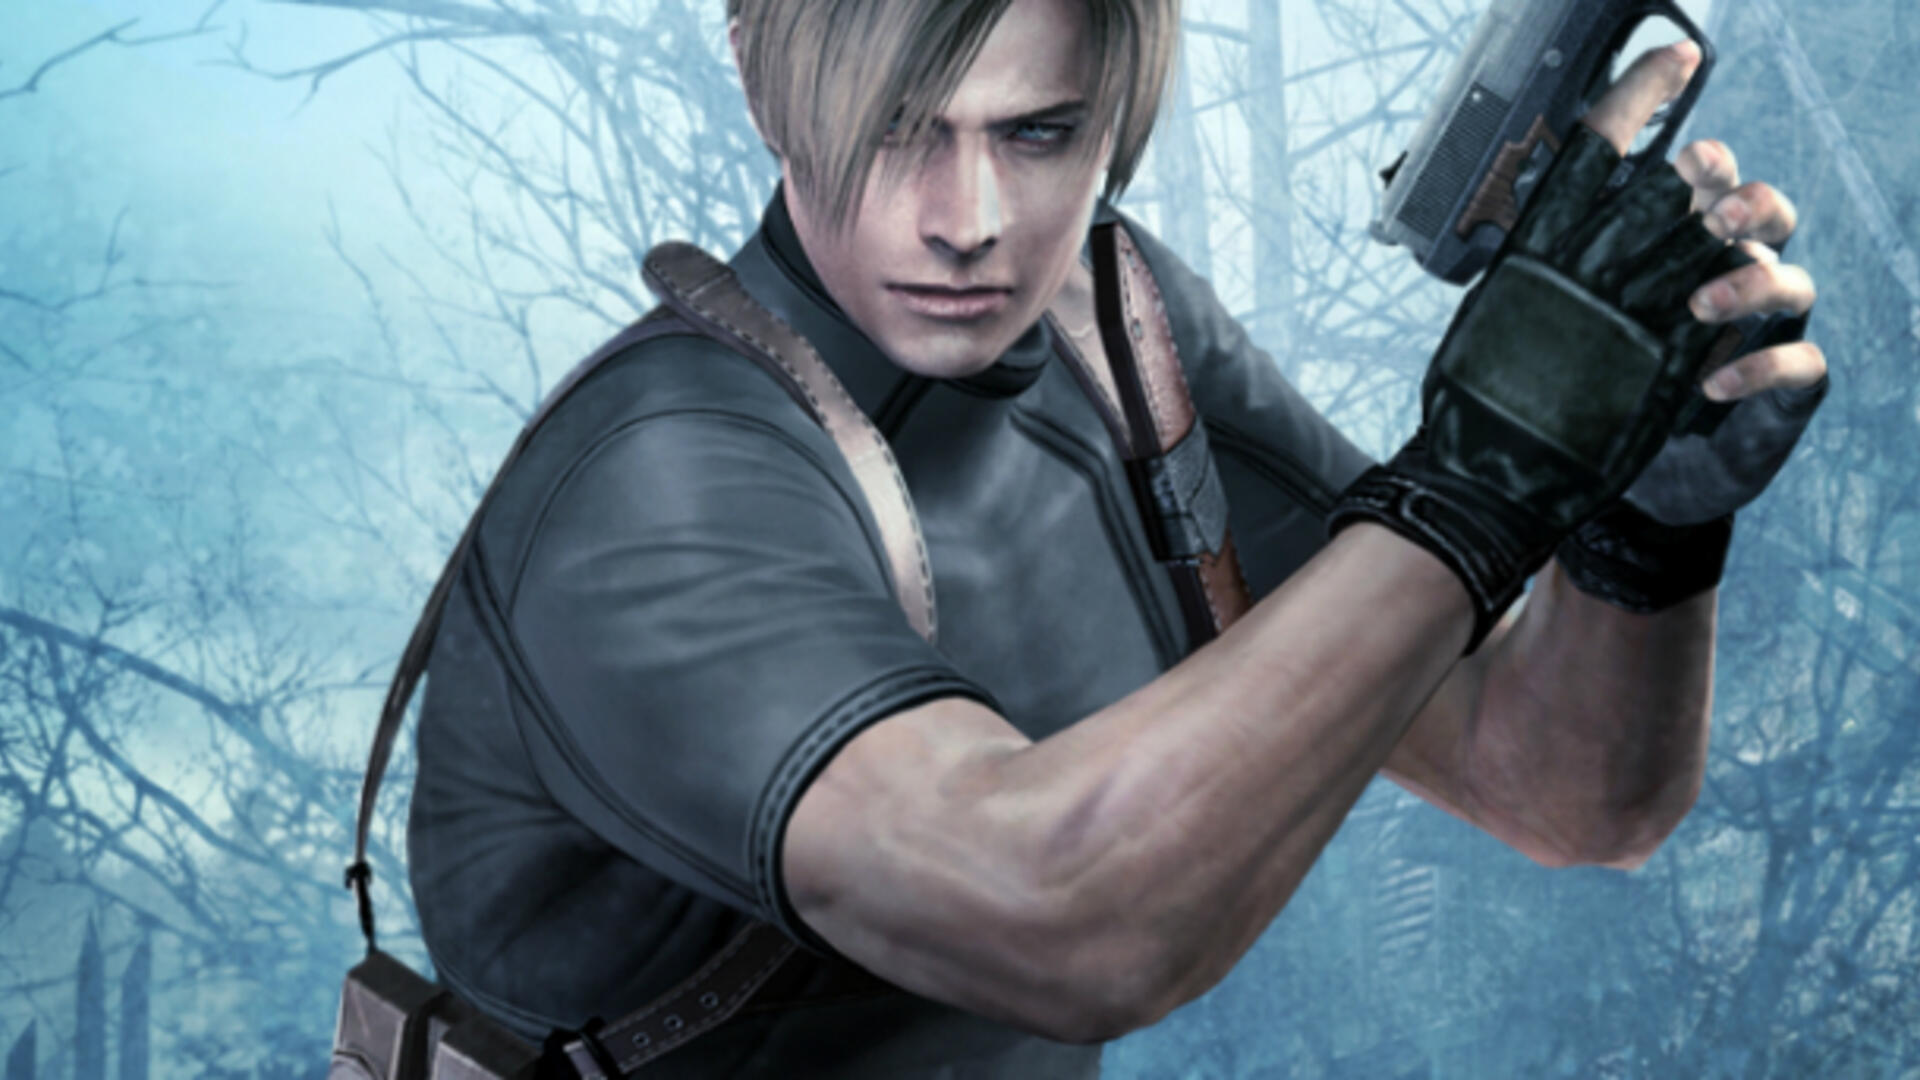 Resident Evil 4, Resident Evil, and Resident Evil 0 Are Coming to Switch in 2019